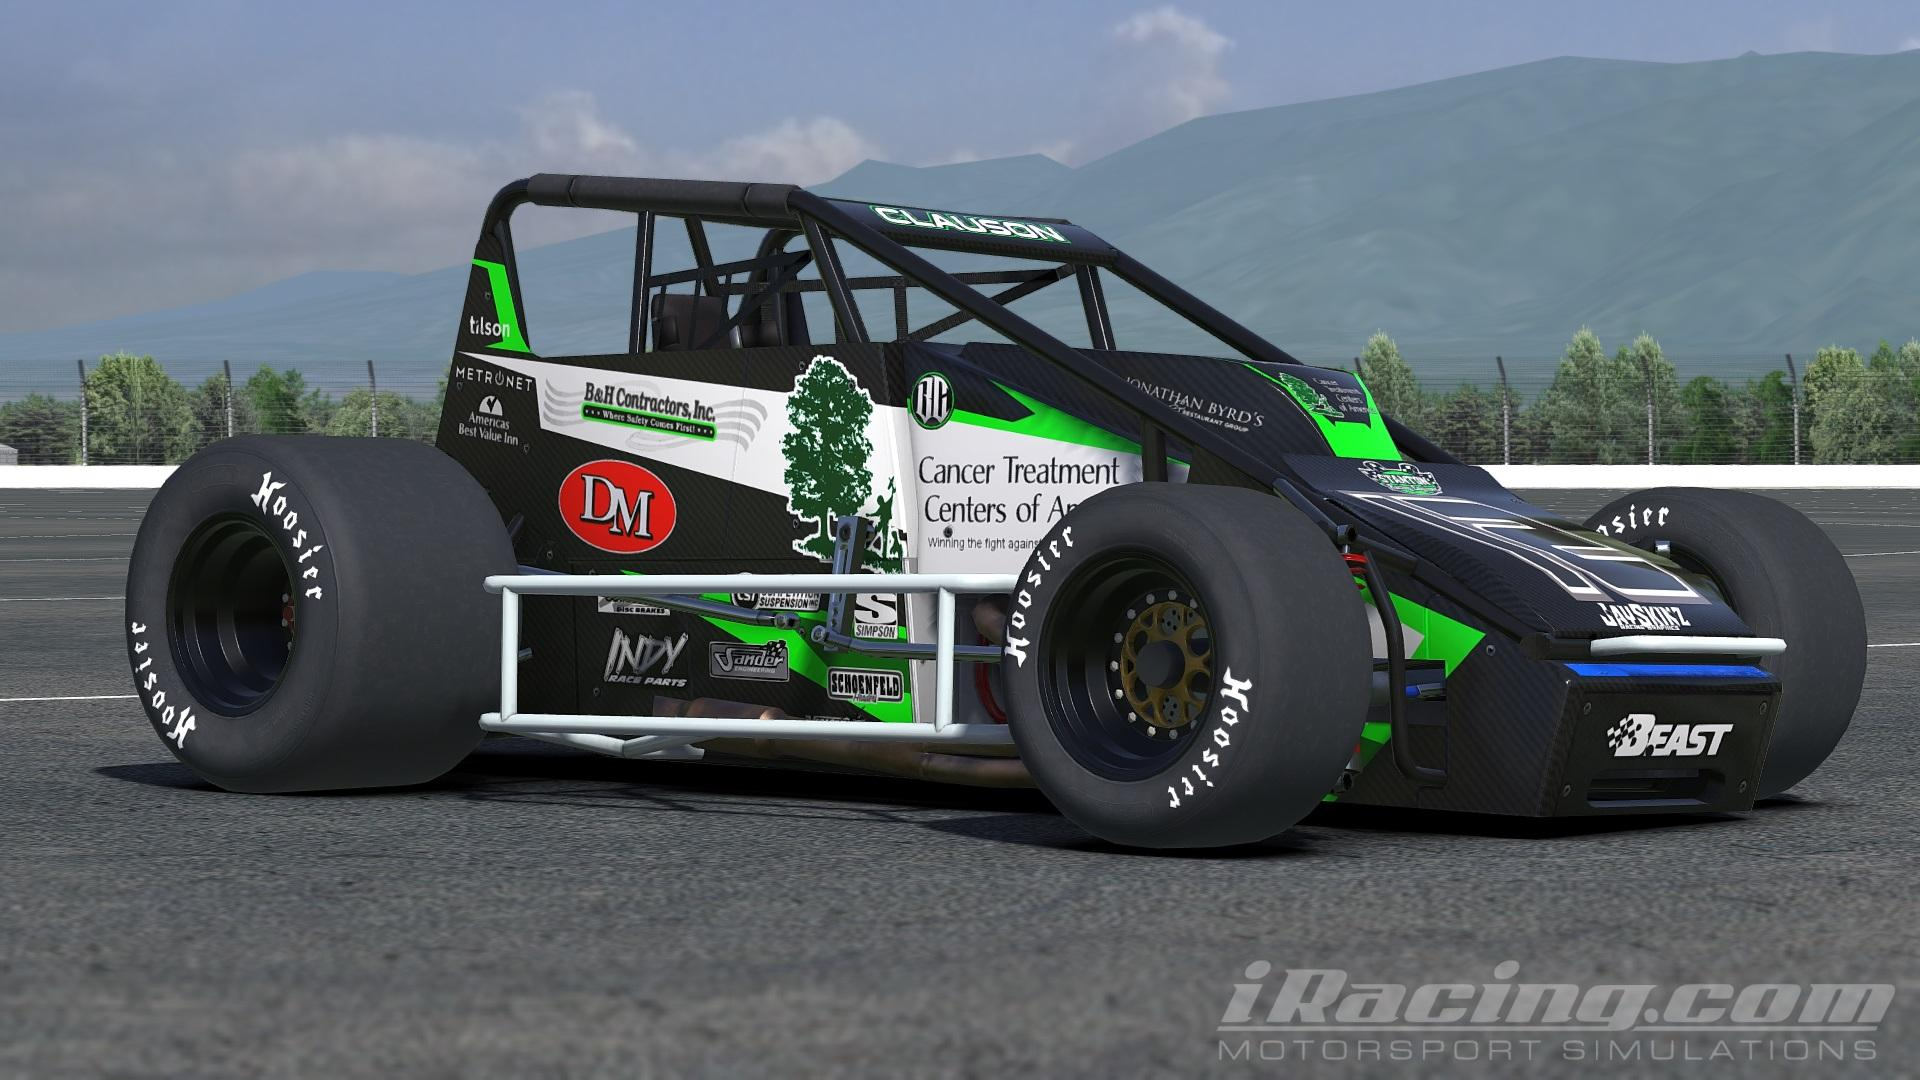 Preview of Bryan Clauson - Cancer Treatment Centers  by Jason B.